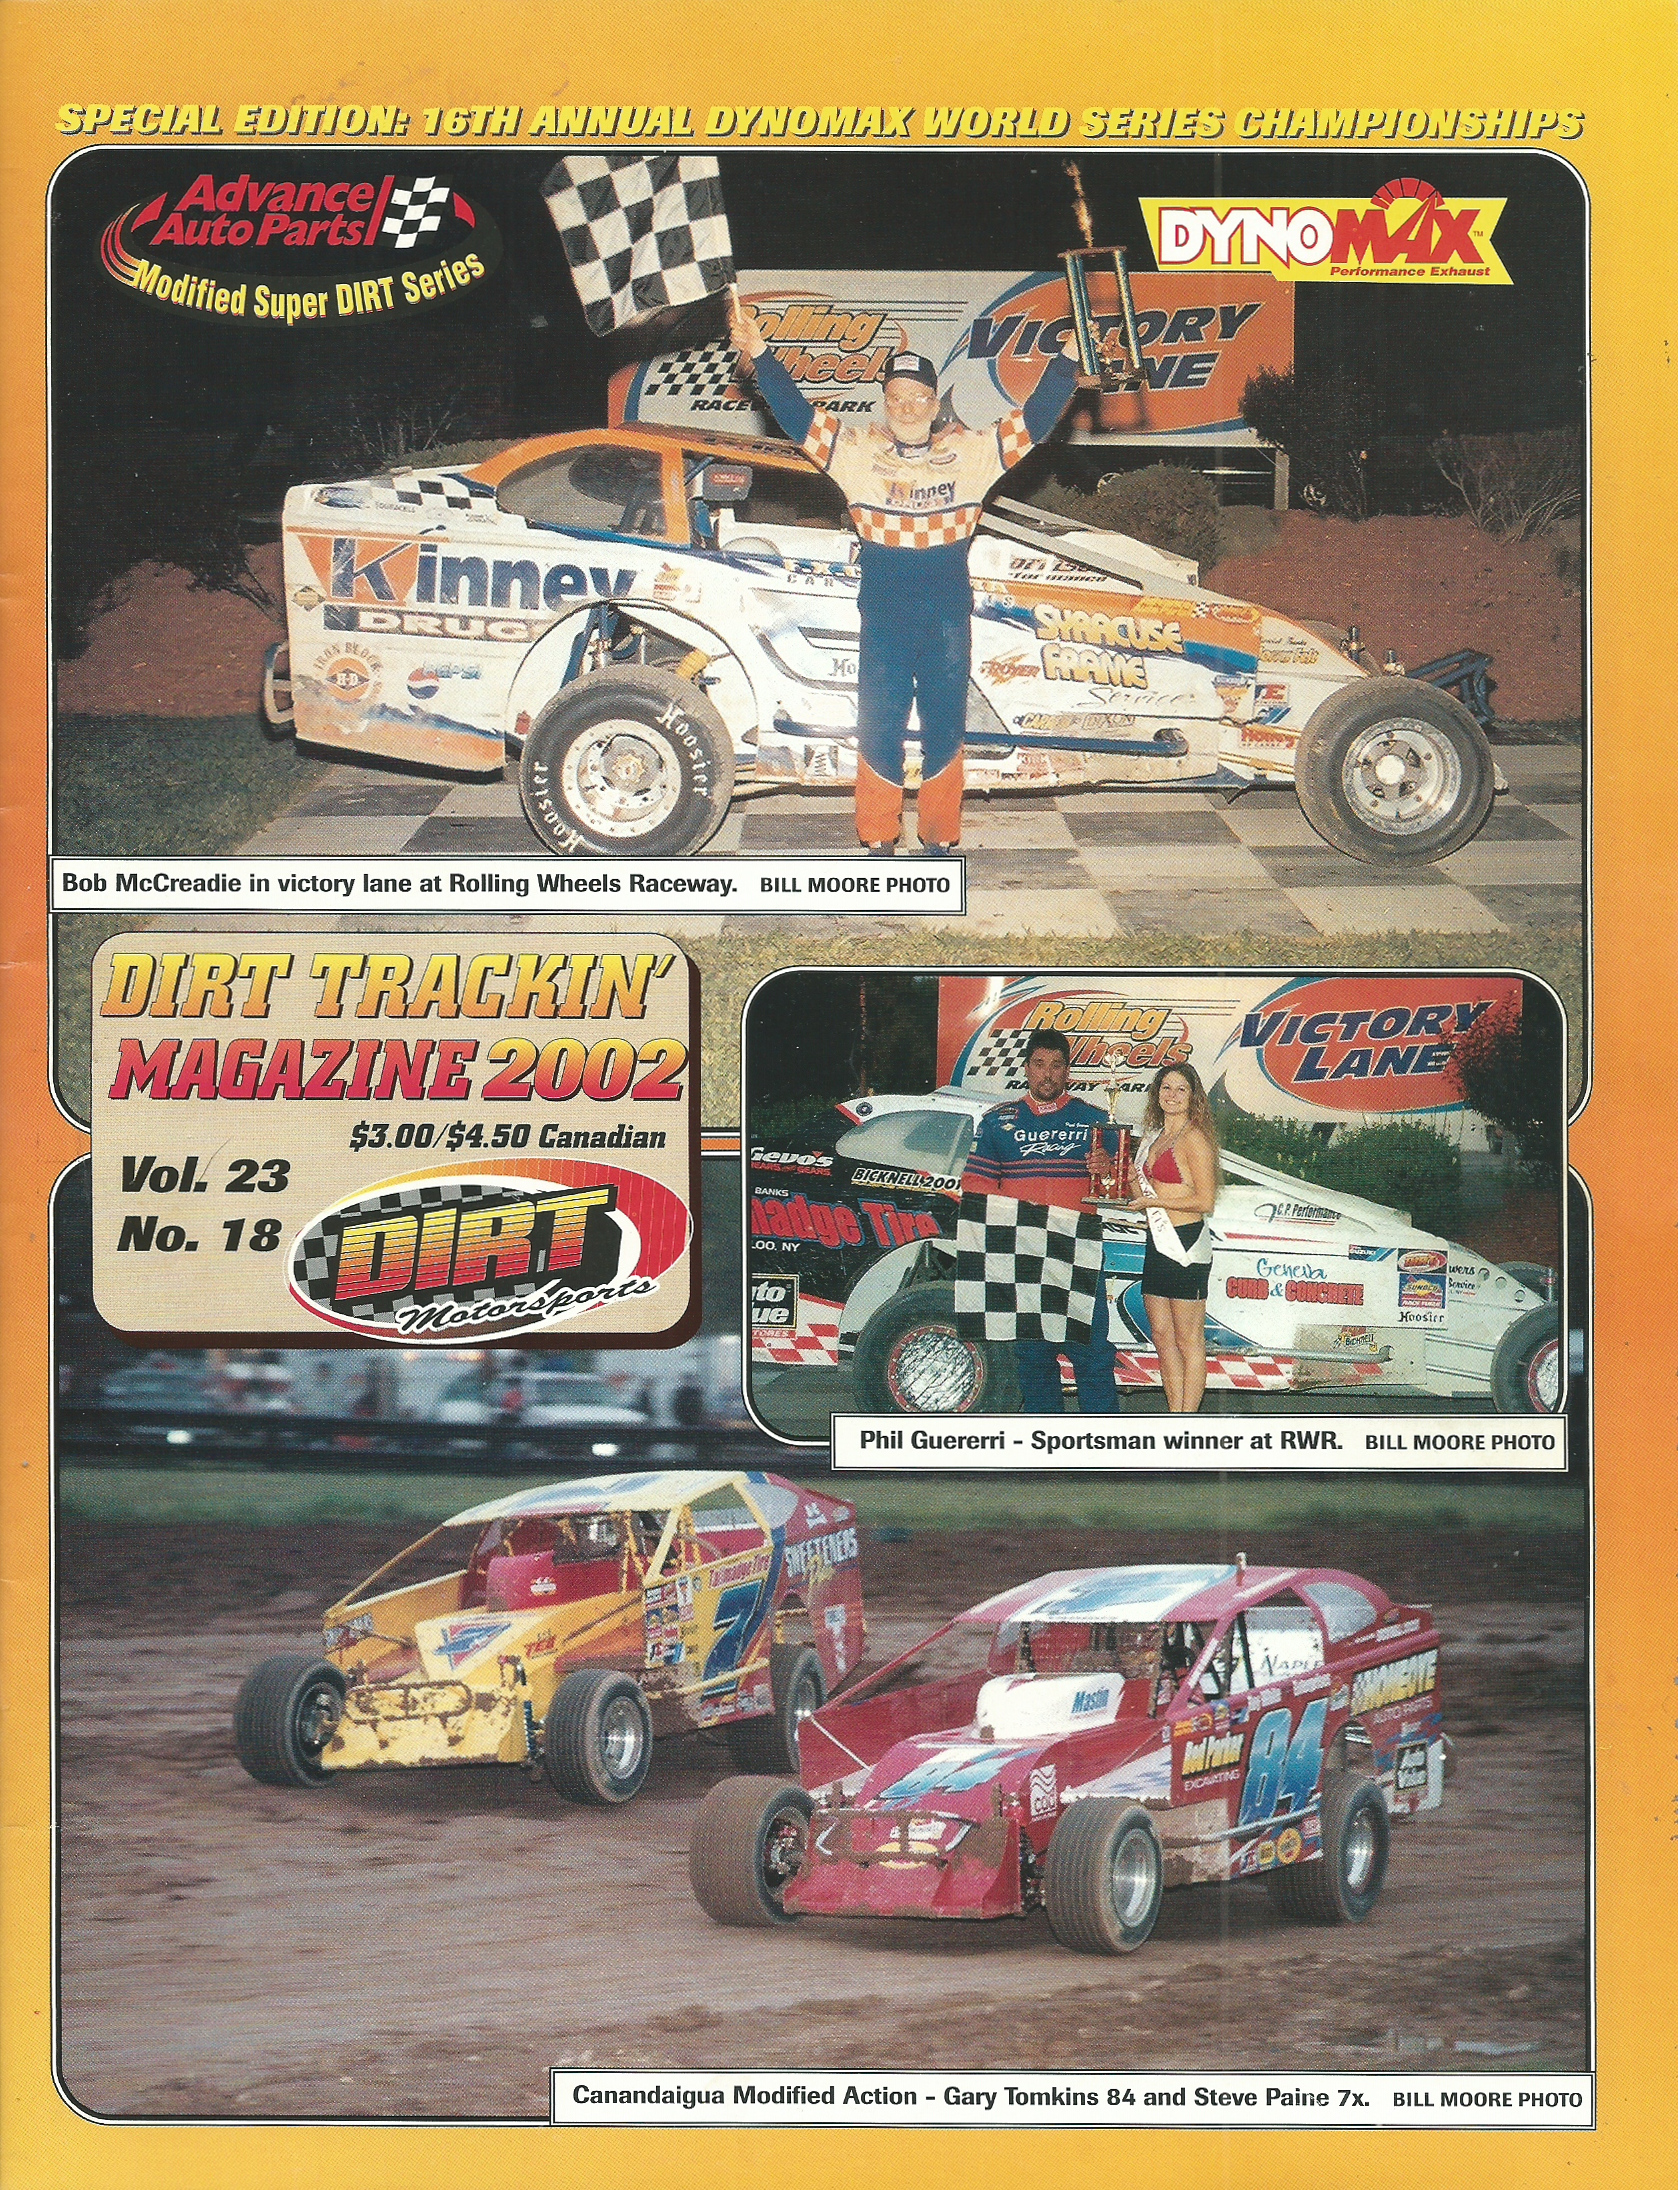 Canandaigua Motorsports Park | The Motor Racing Programme Covers Project